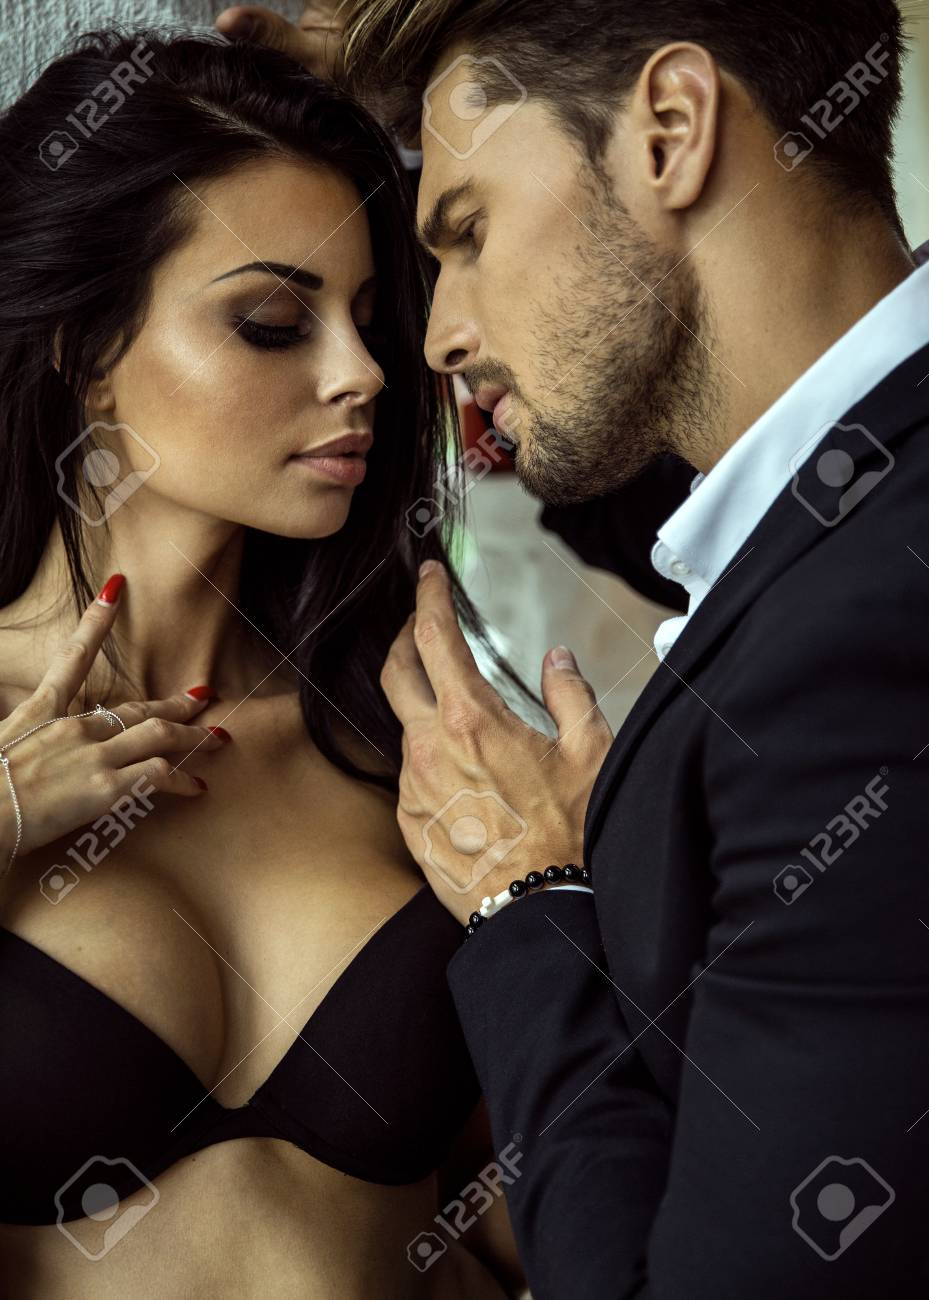 Sexy pics of man and woman